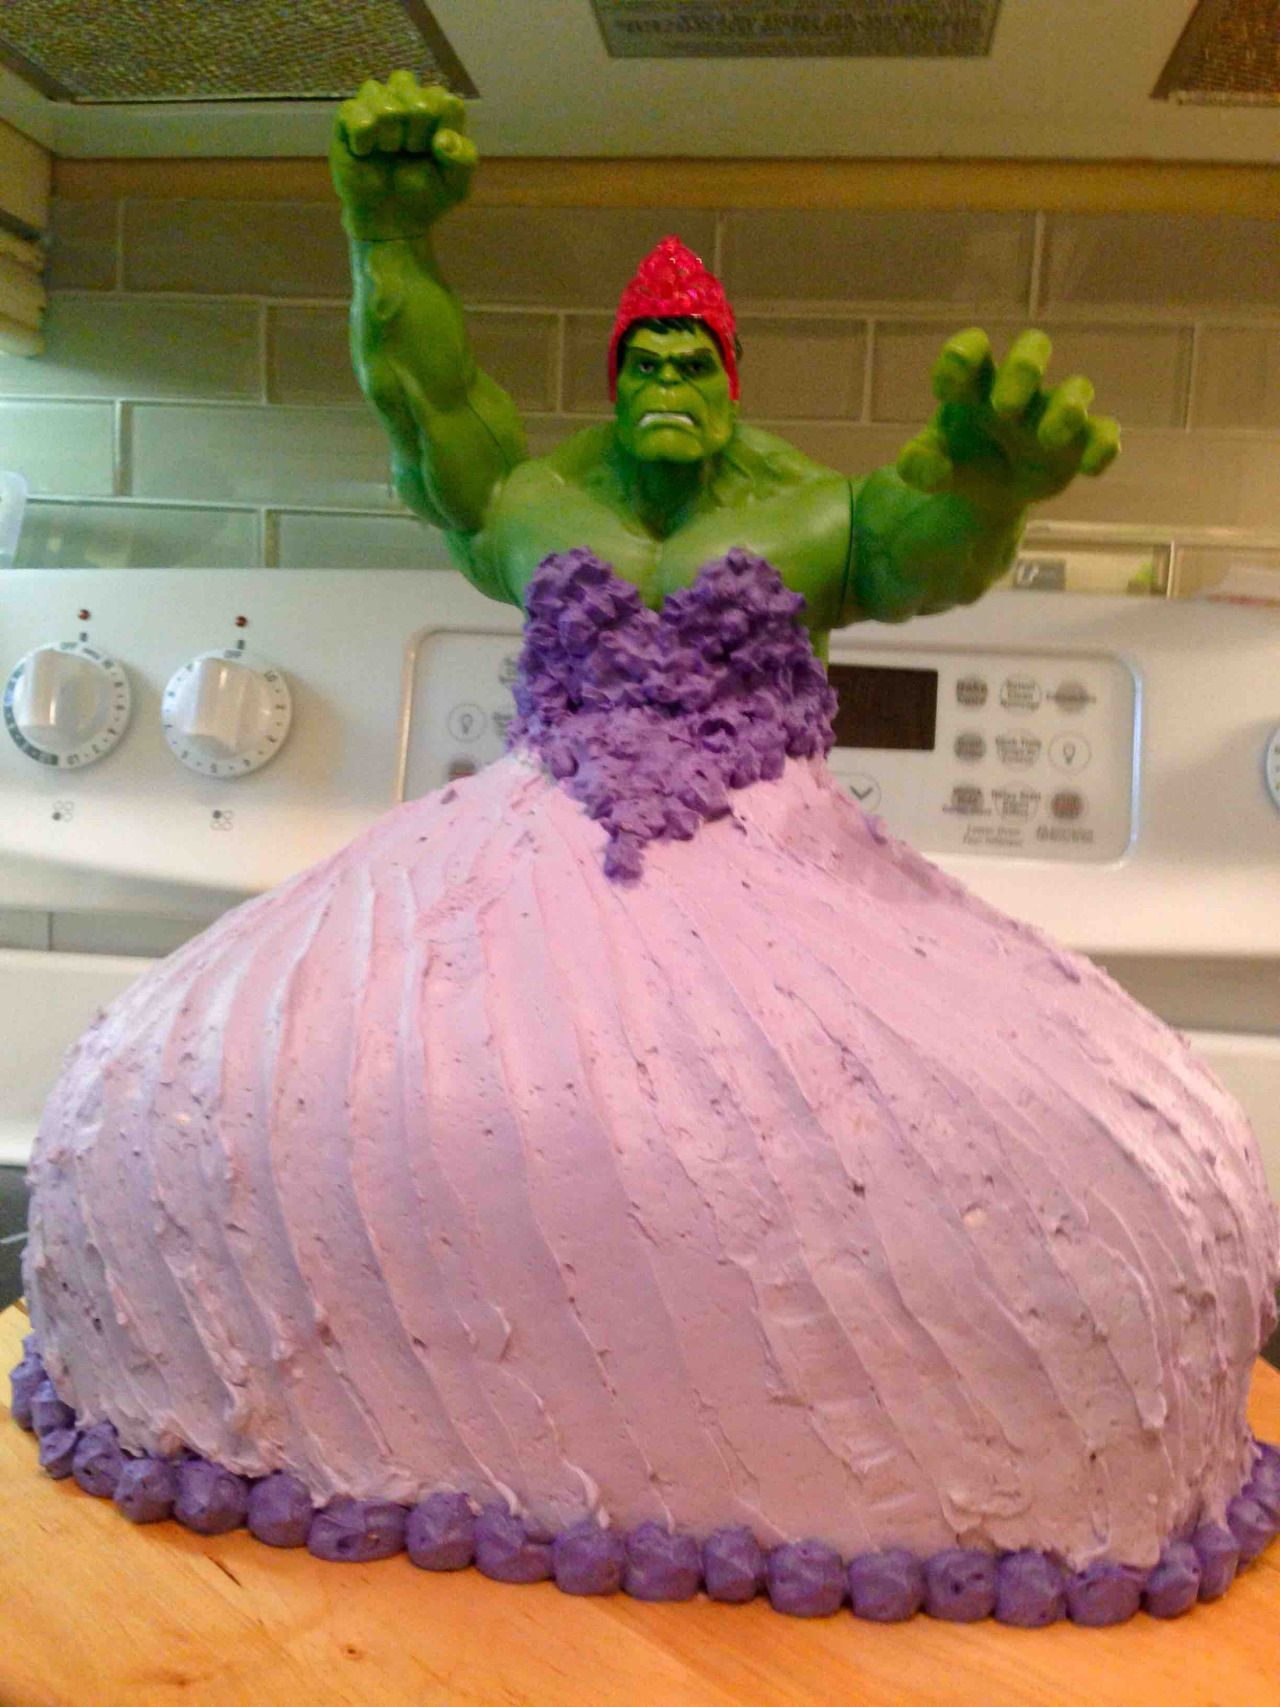 Hulk Smash (Gender Roles) Dad Makes Daughters A Hulk Princess